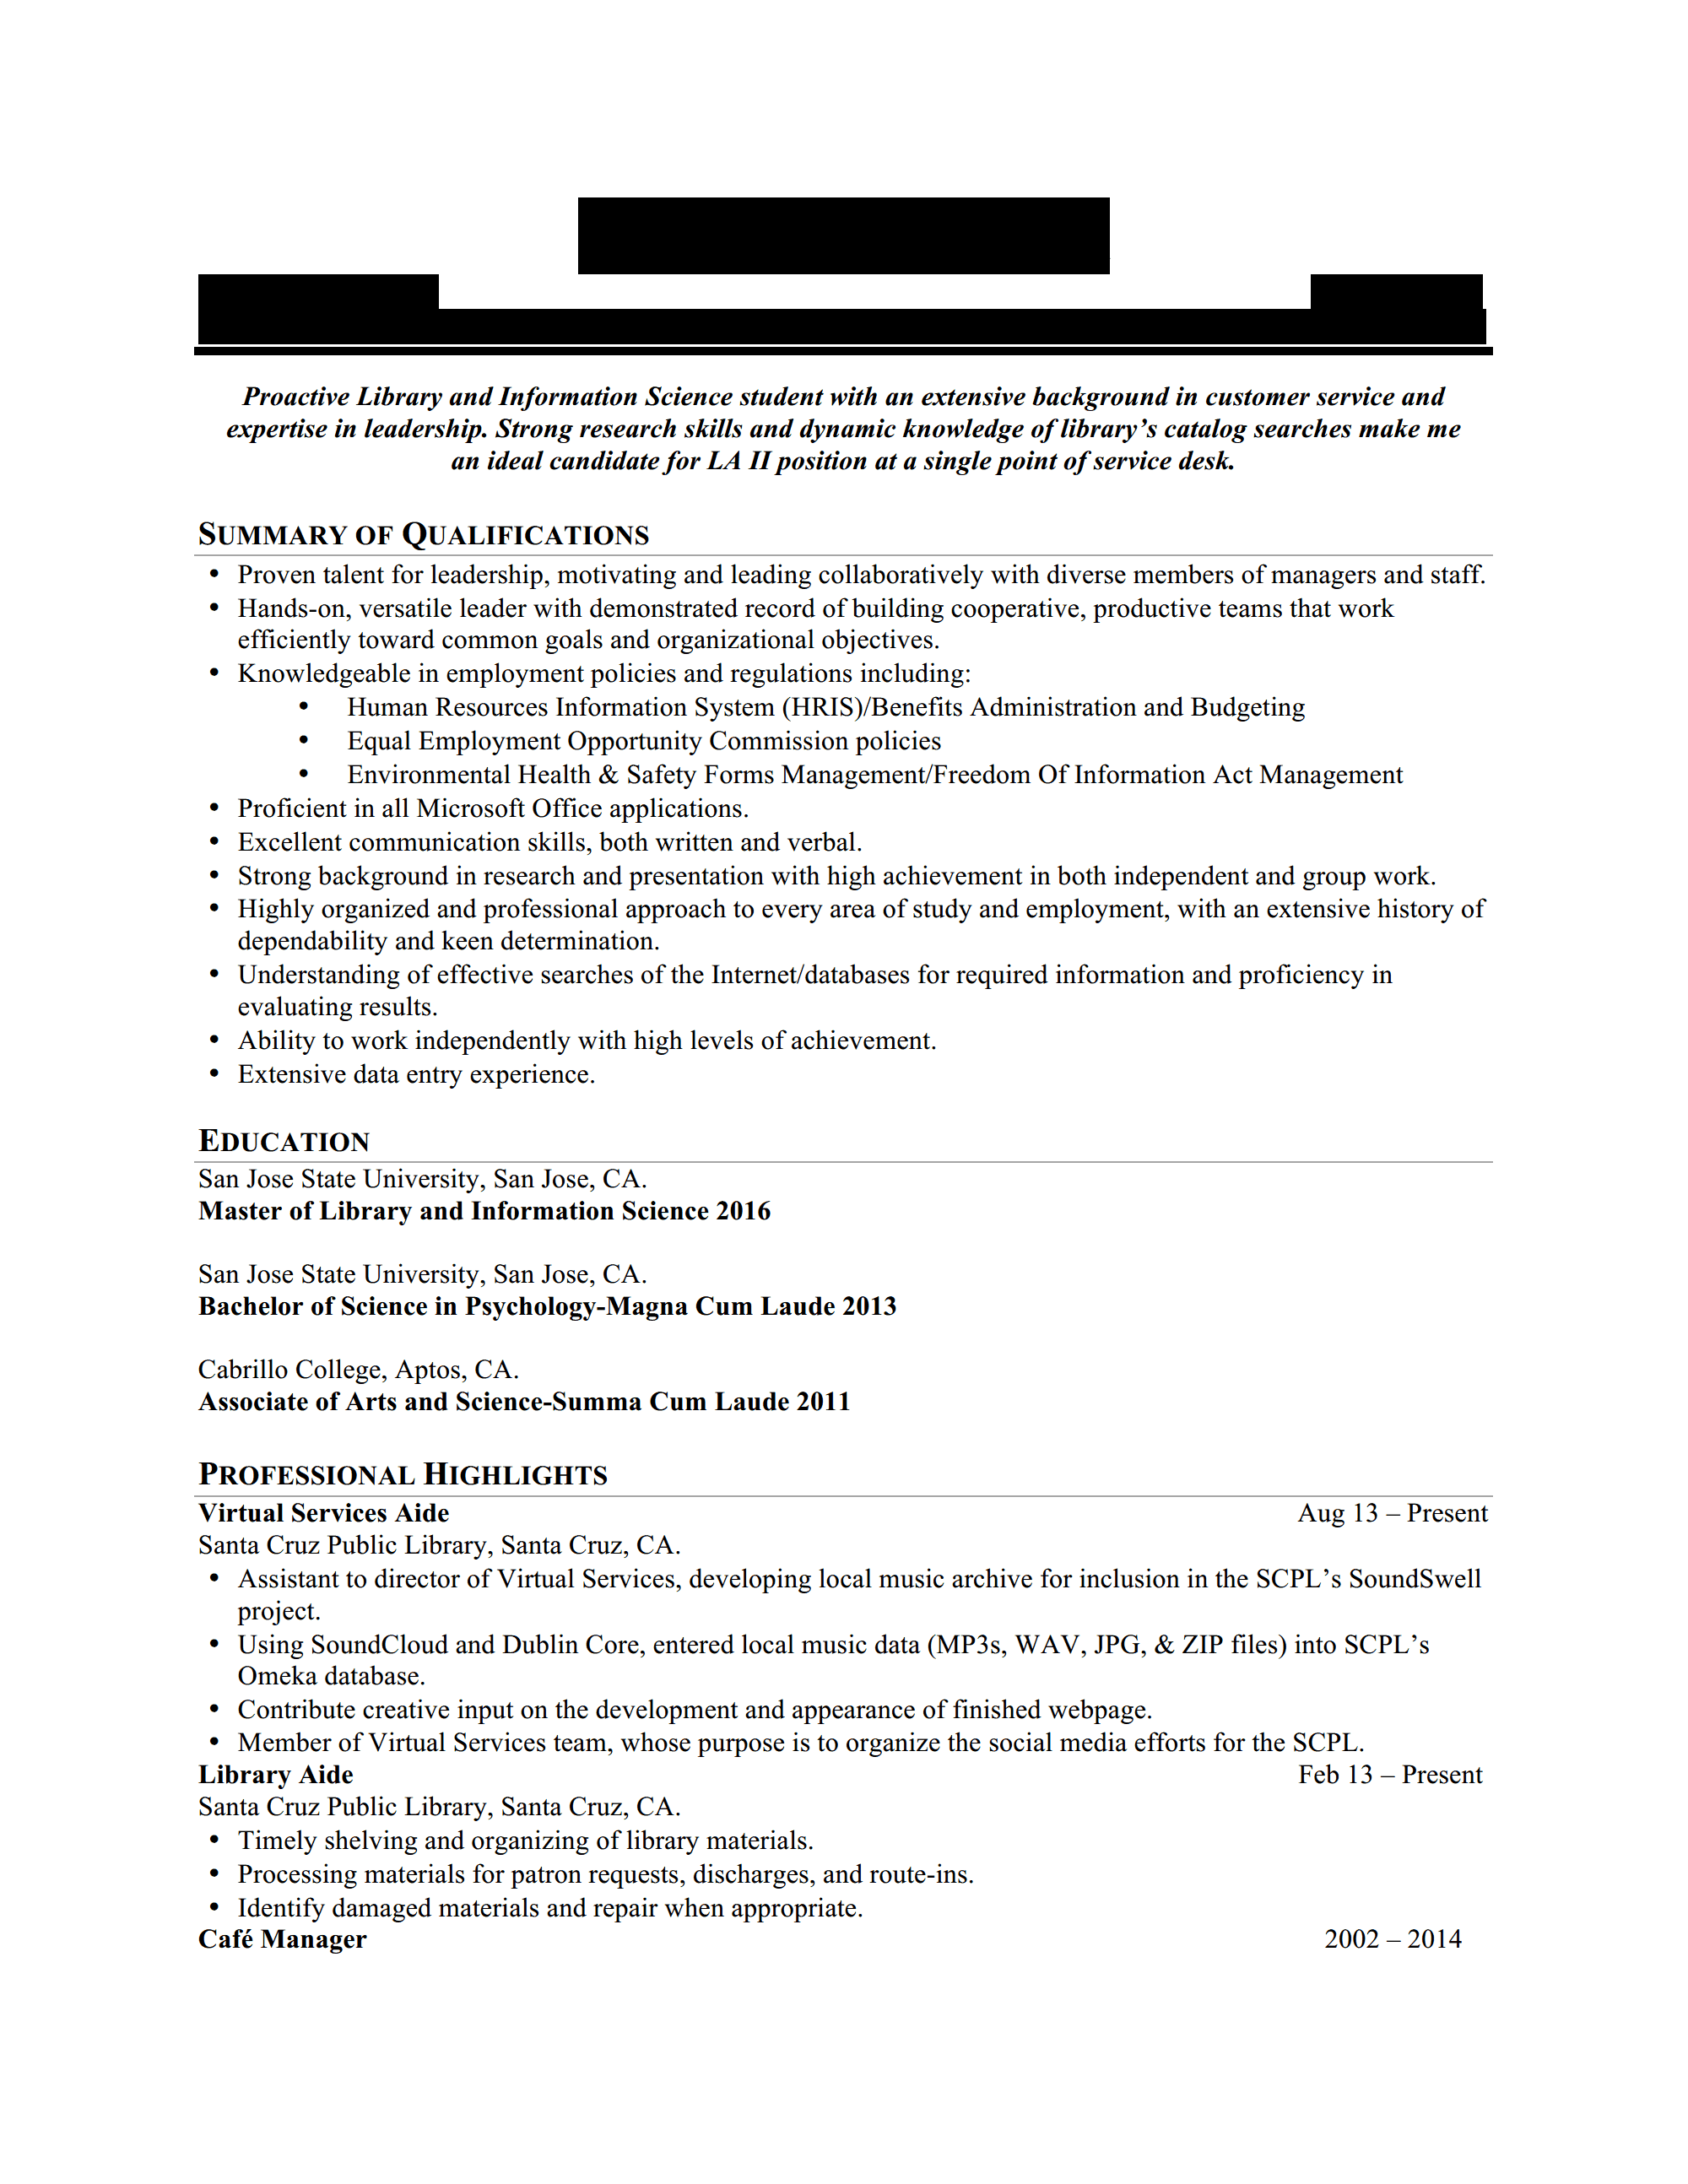 paraprofessional hiring librarians resume for critique 2014 page 1